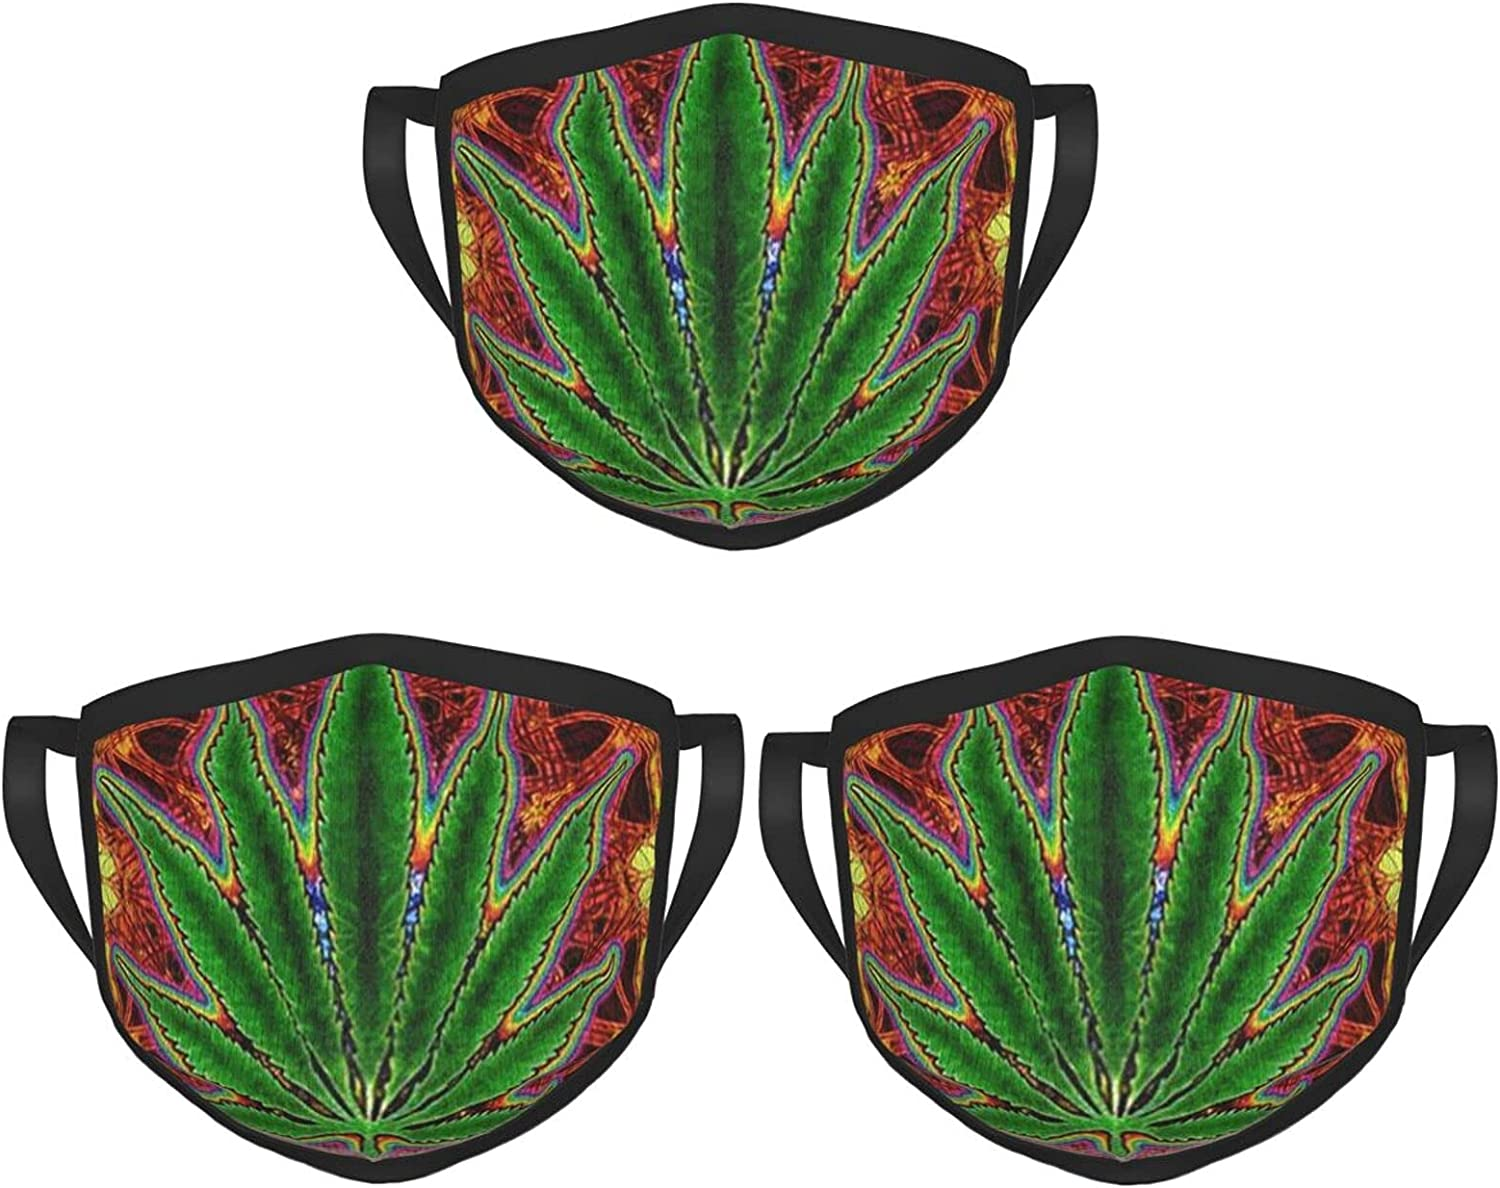 Balaclava Earmuffs Cannabis Trippy Psychedelic Stoner Face Mouth Cover Mask Reusable Washable Scarf Towel Cover Headwrap